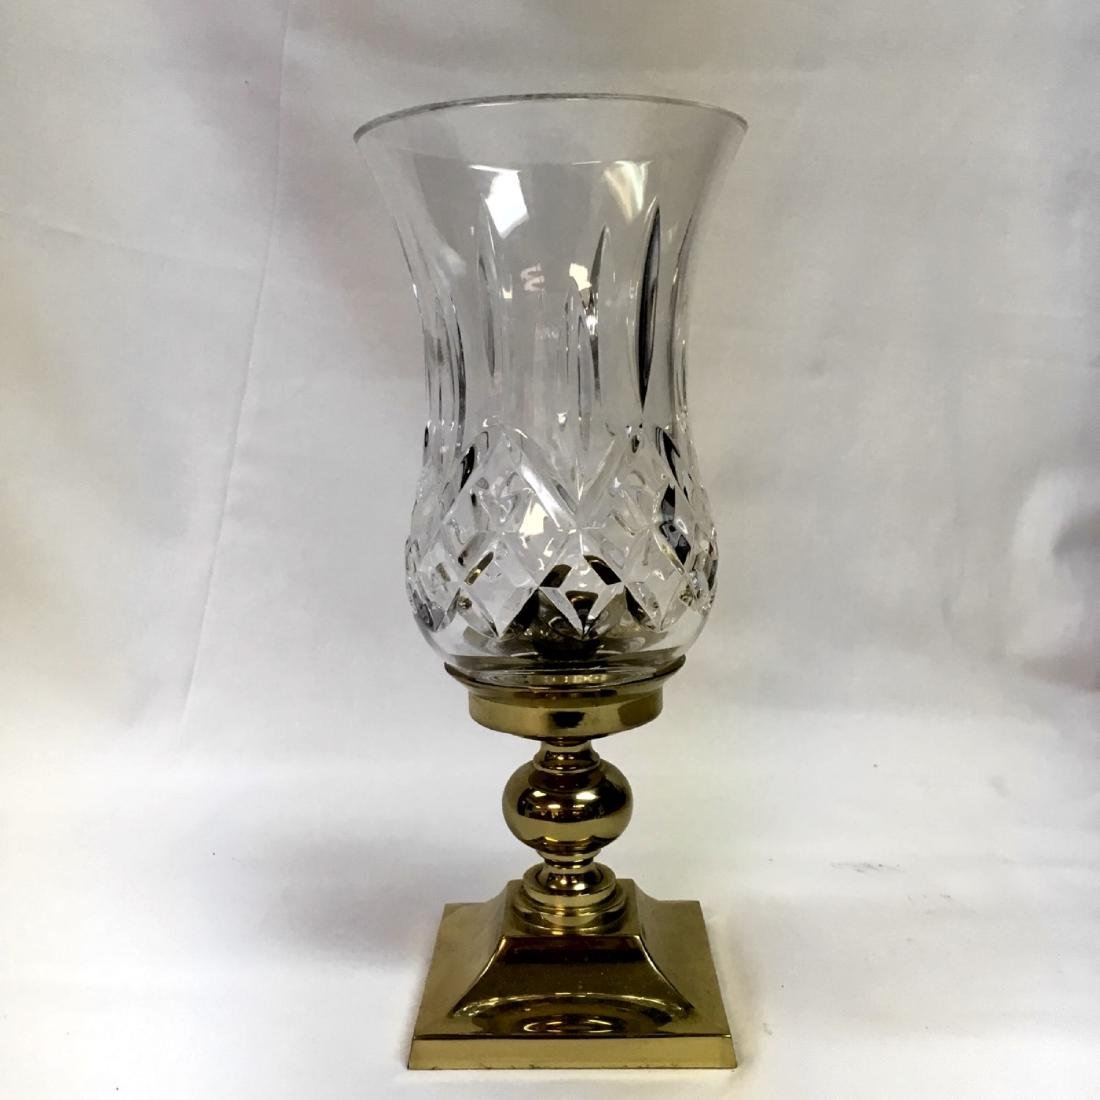 A Waterford Crystal Lismore Hurricane Lamp.